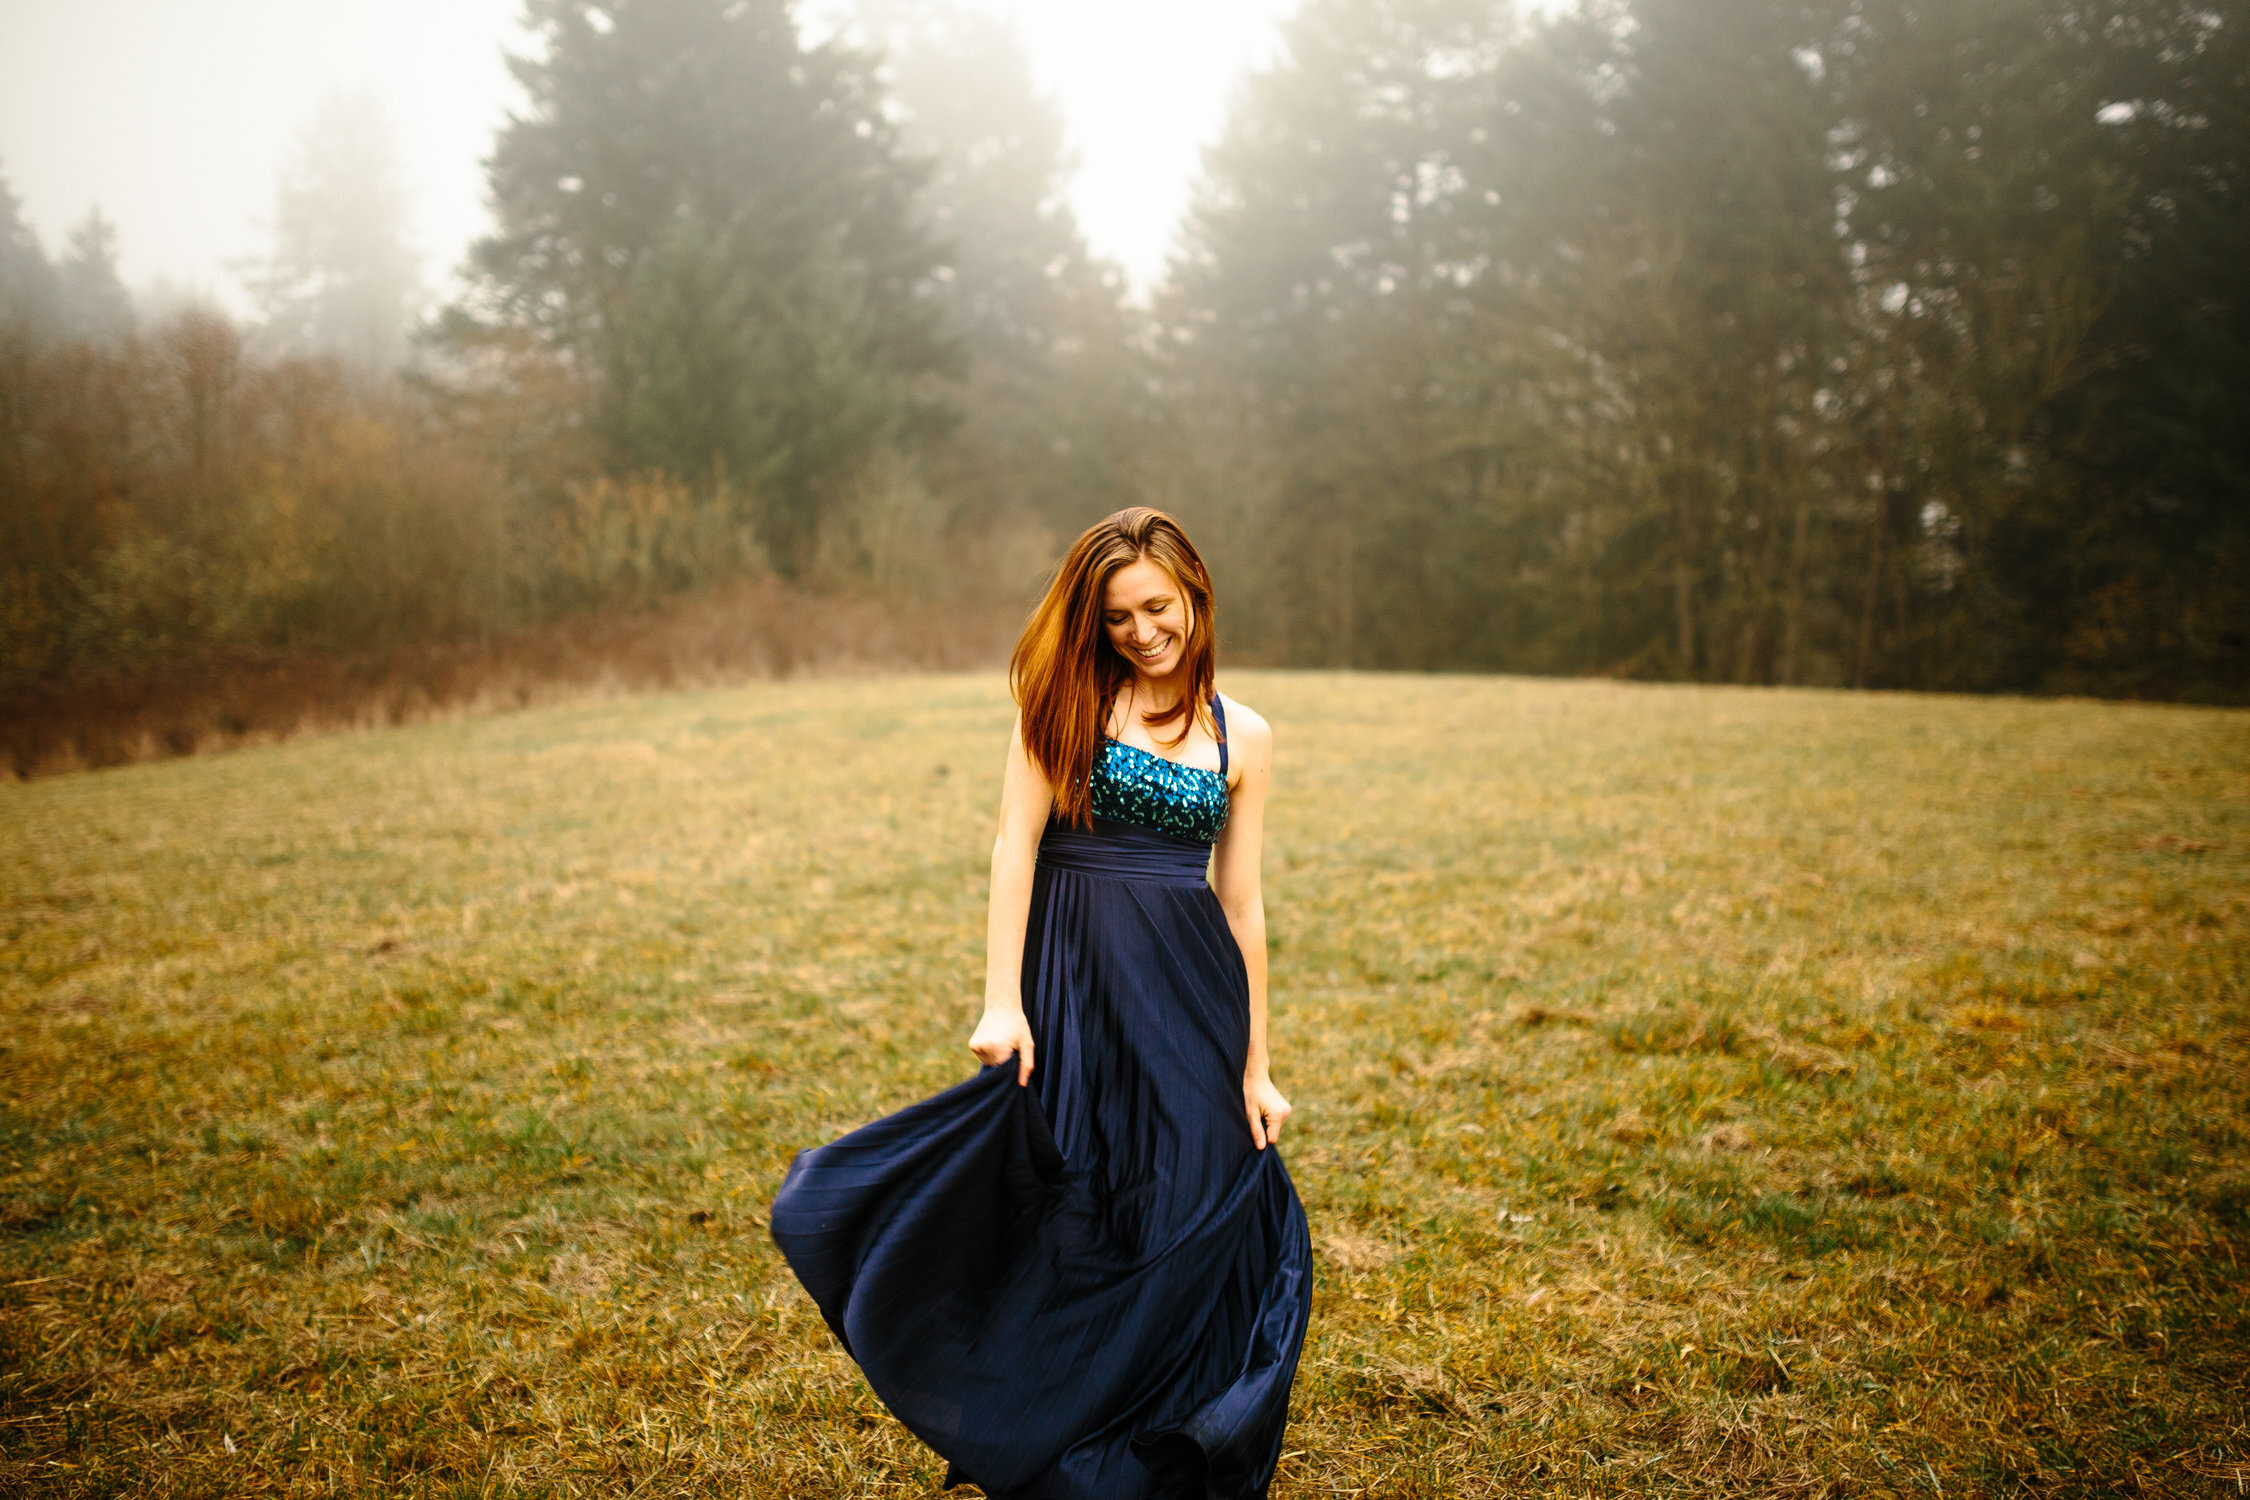 rsz_portraits_of_corrie_in_the_foggy_field_-_corrie_mick_photography-12.jpg